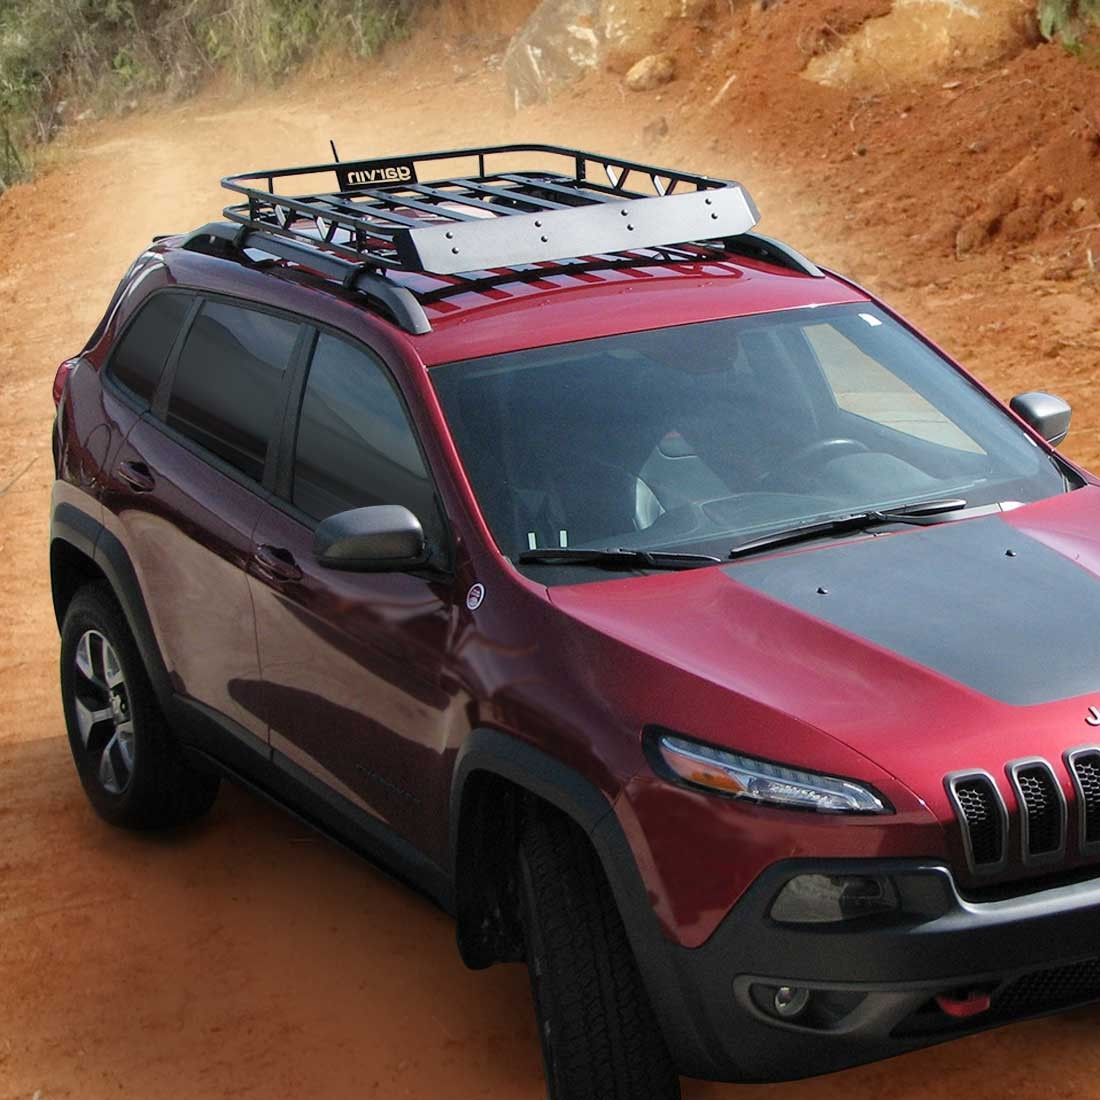 Our Garvin Rack For The New Jeep Cherokee Is A Great Way To Add